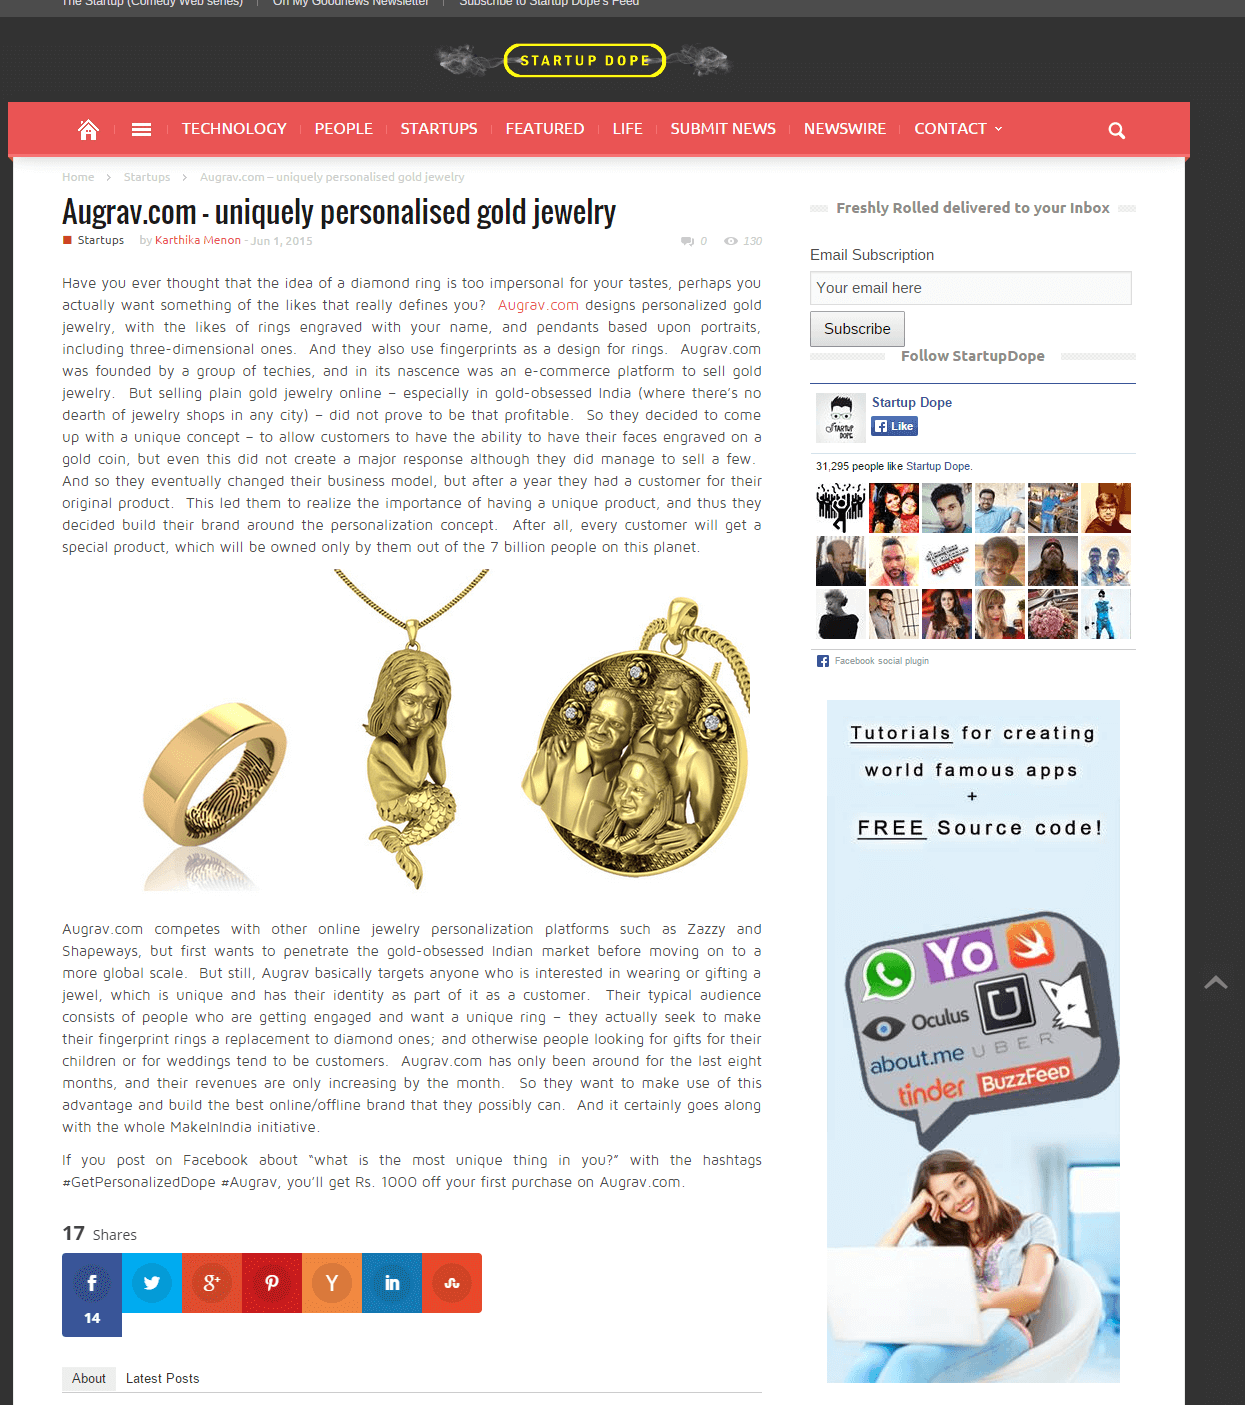 screencapture-startupdope-com-augrav-personalised-jewelry-1433423068158